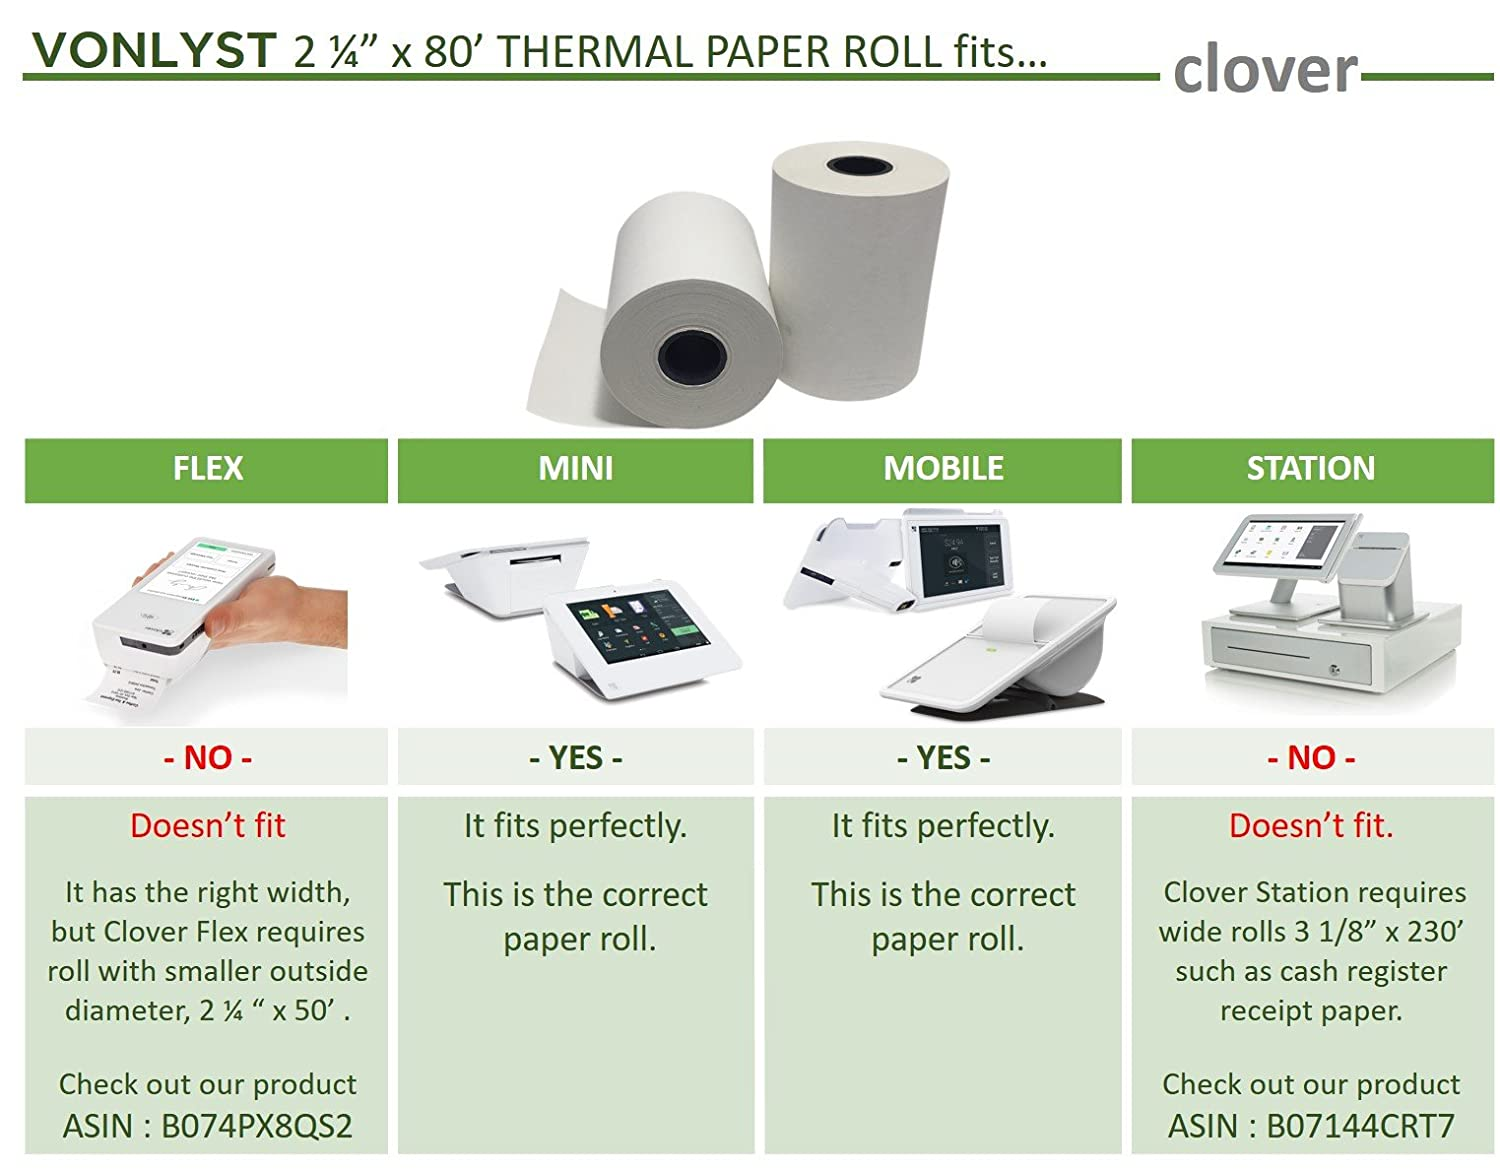 Amazon.com : Thermal Paper, 2 1/4 x 80 fits Clover Mini and Mobile (10  rolls) : Office Products